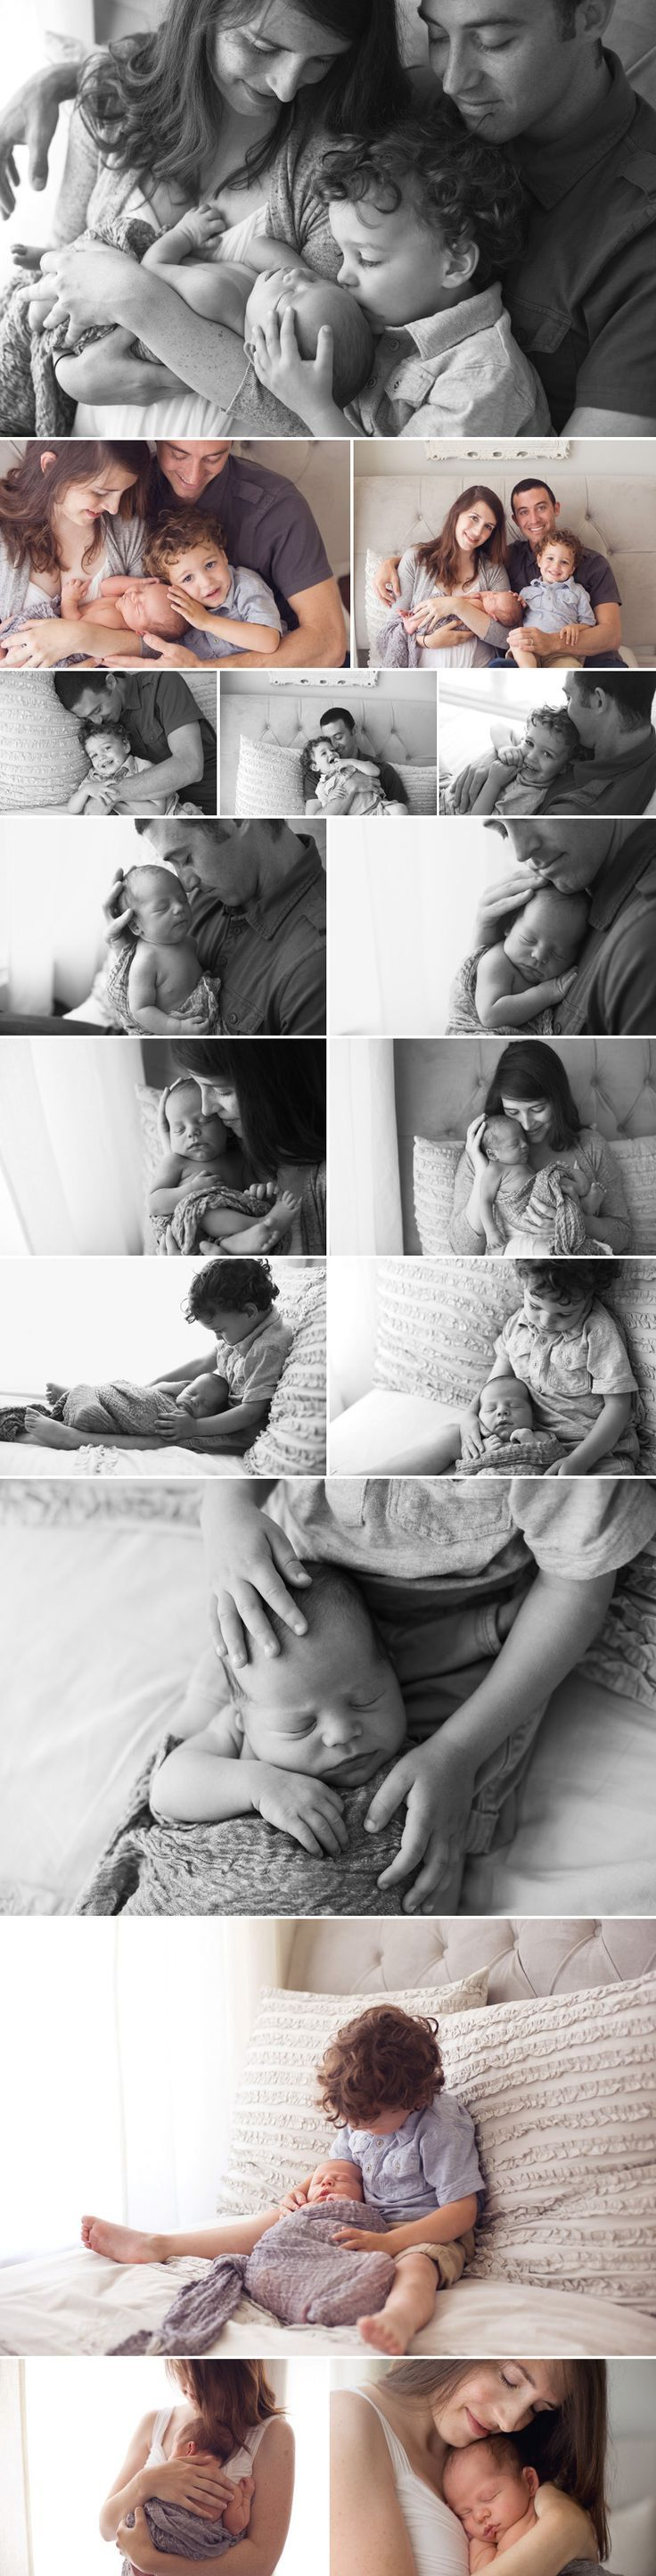 raye law | newborn sibling Real photography -- this is the real thing in my opinion. I love the genuine expressions and feeling of the images.